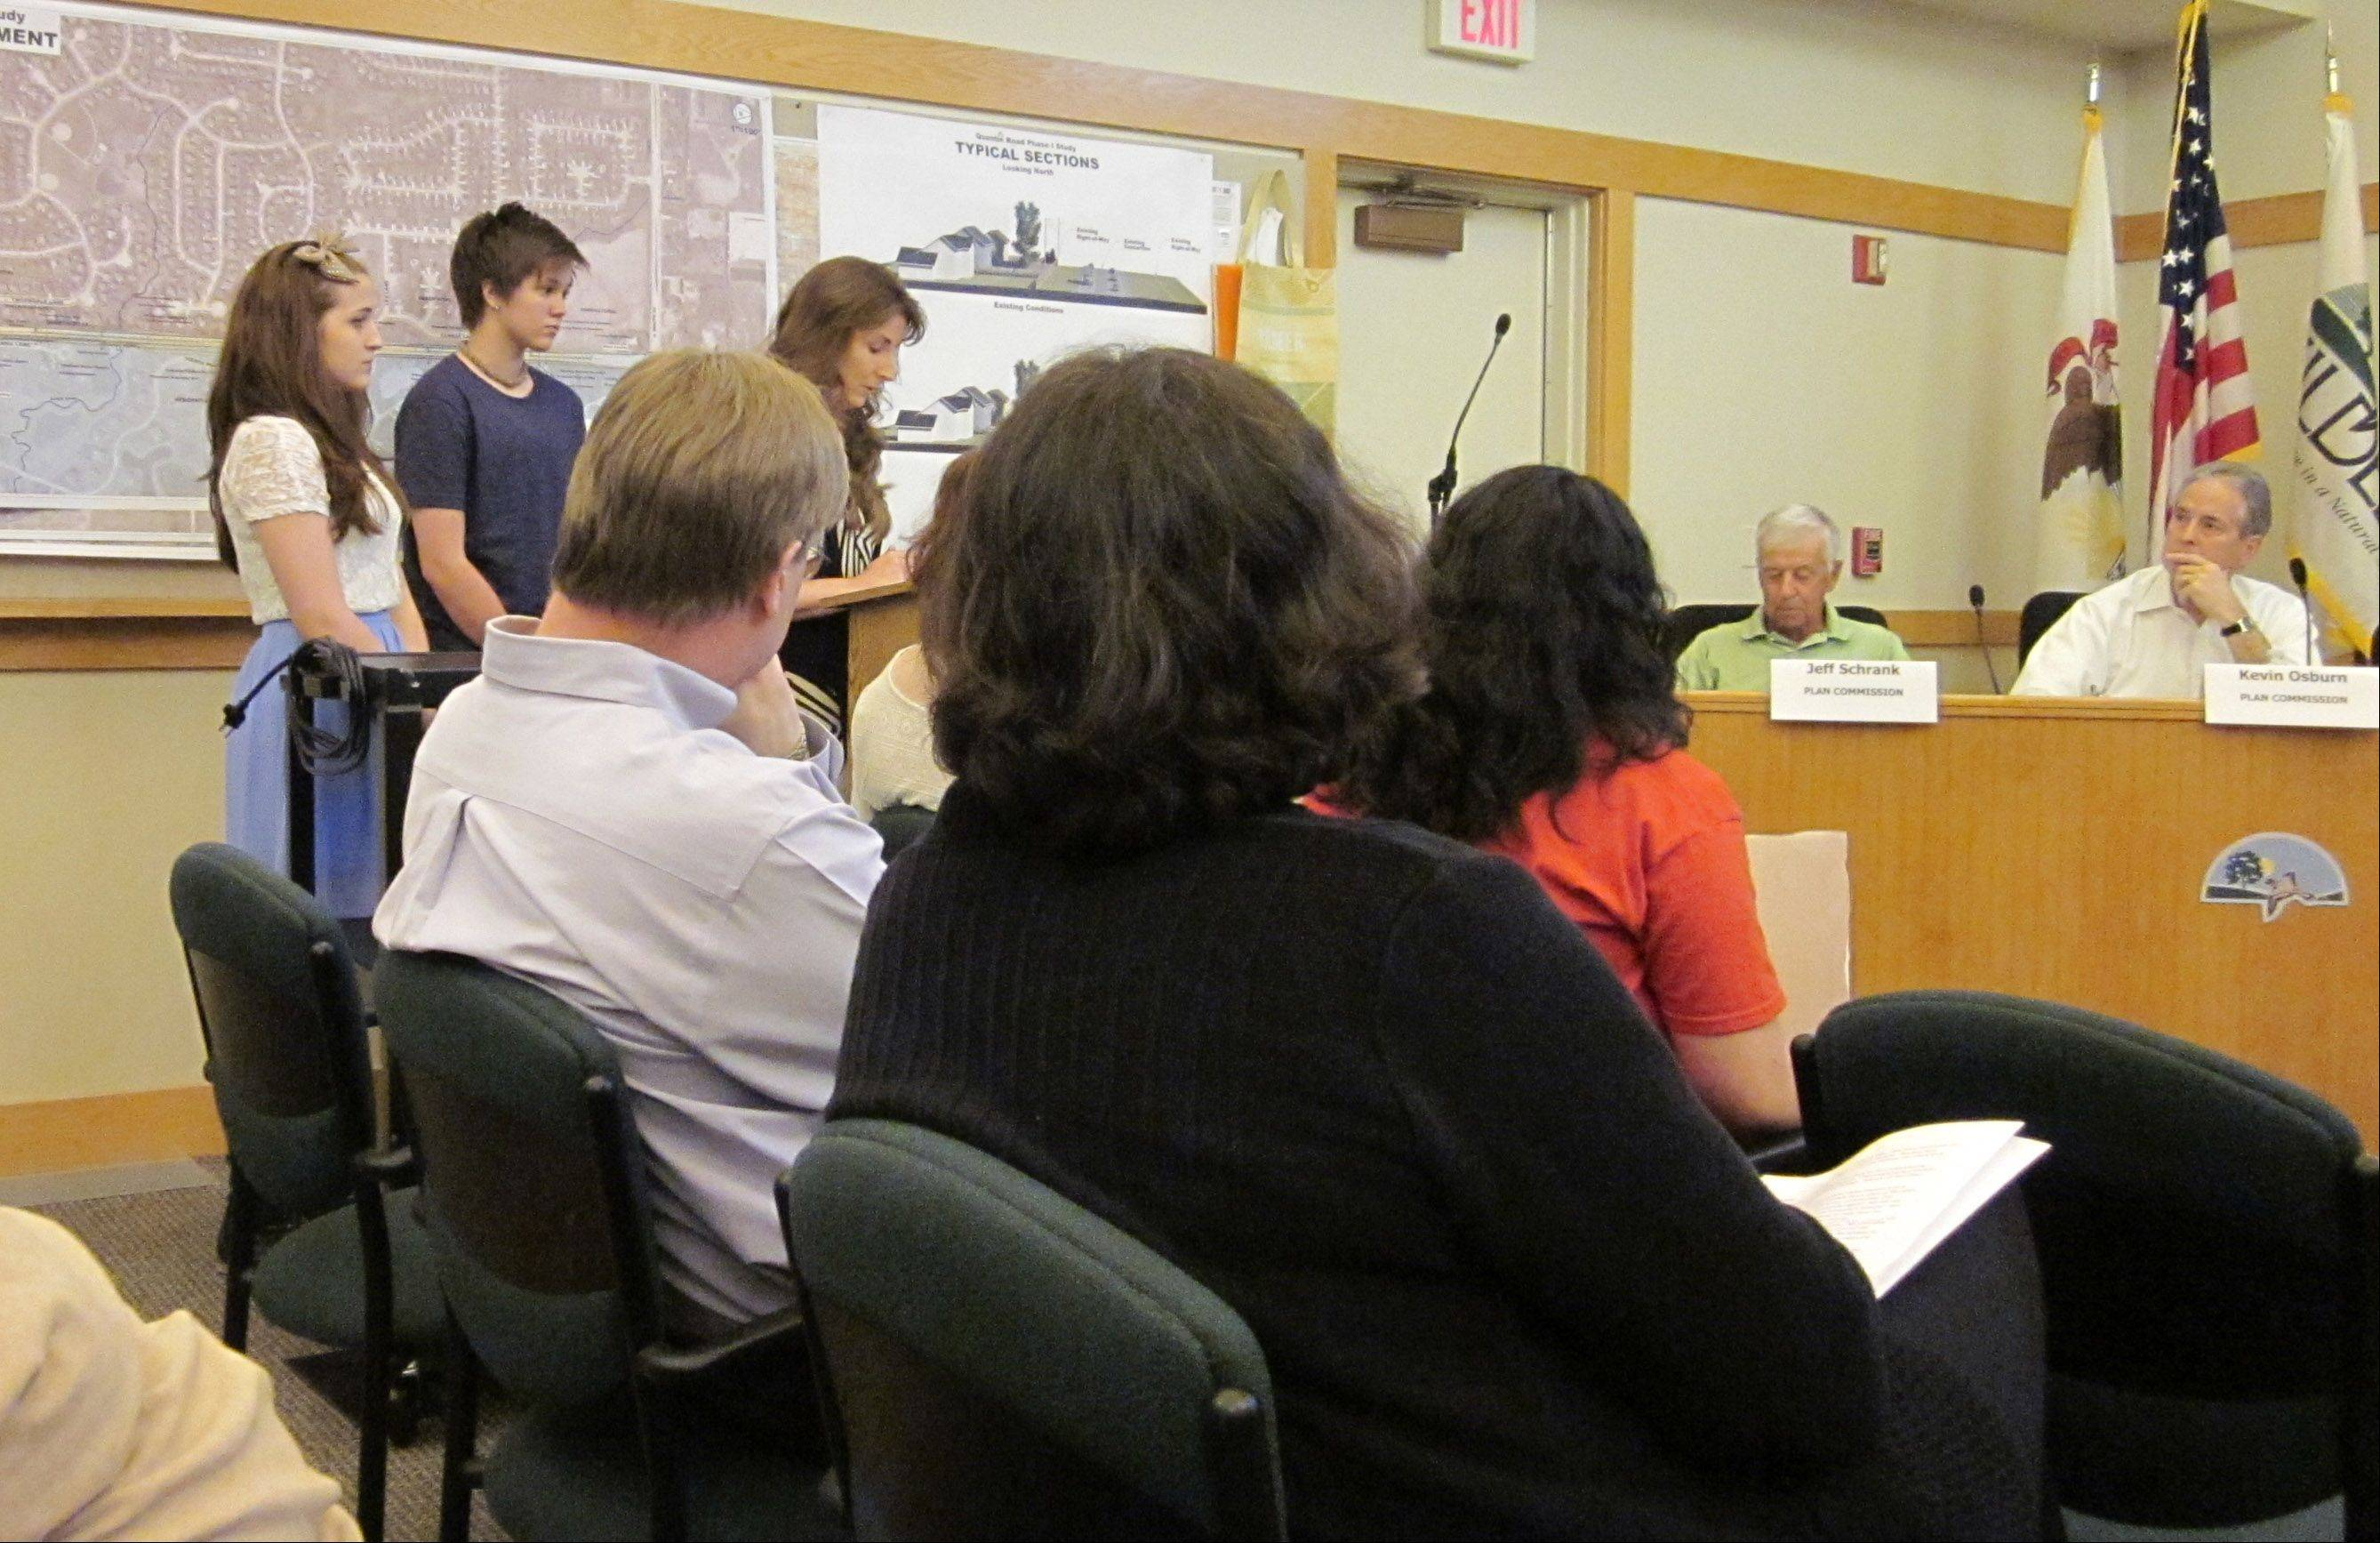 Spectators at Tuesday's Kildeer plan commission meeting listen as Donna LaJeunesse of Lake Zurich speaks against a Chick-fil-A restaurant proposed for the former Muddy Paws shelter site on Rand Road.